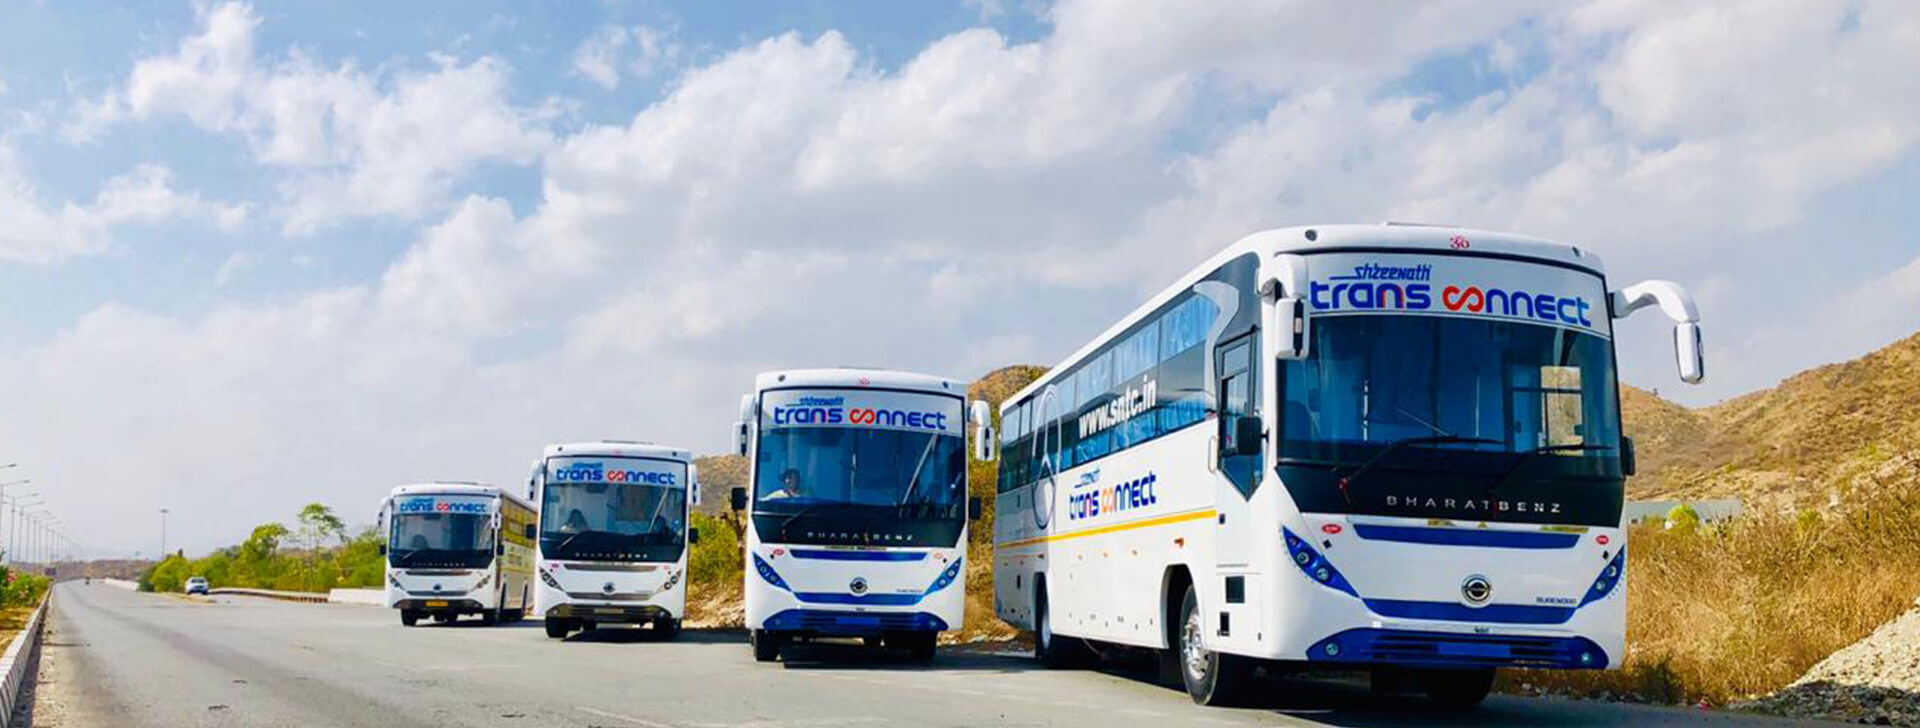 Shreenath Tranns Connect | ONLINE BUS TICKET BOOKINGS & TRAVEL SERVICES